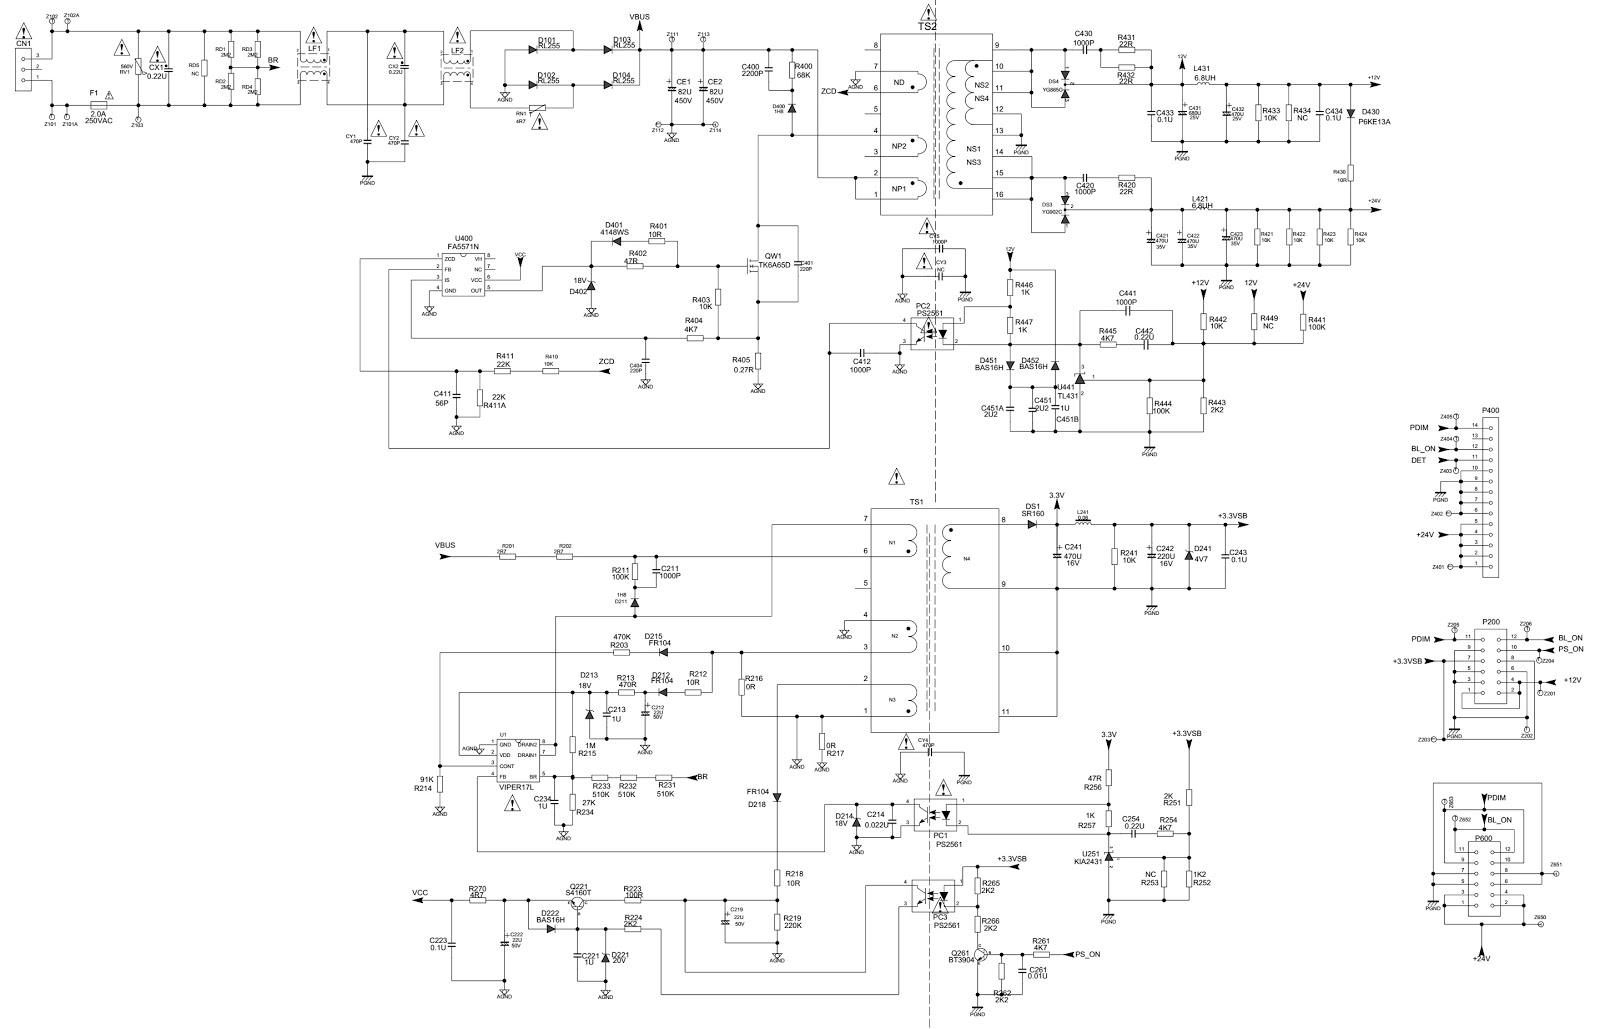 Beautiful Frontech Smps Circuit Diagram Ideas - Electrical and ...